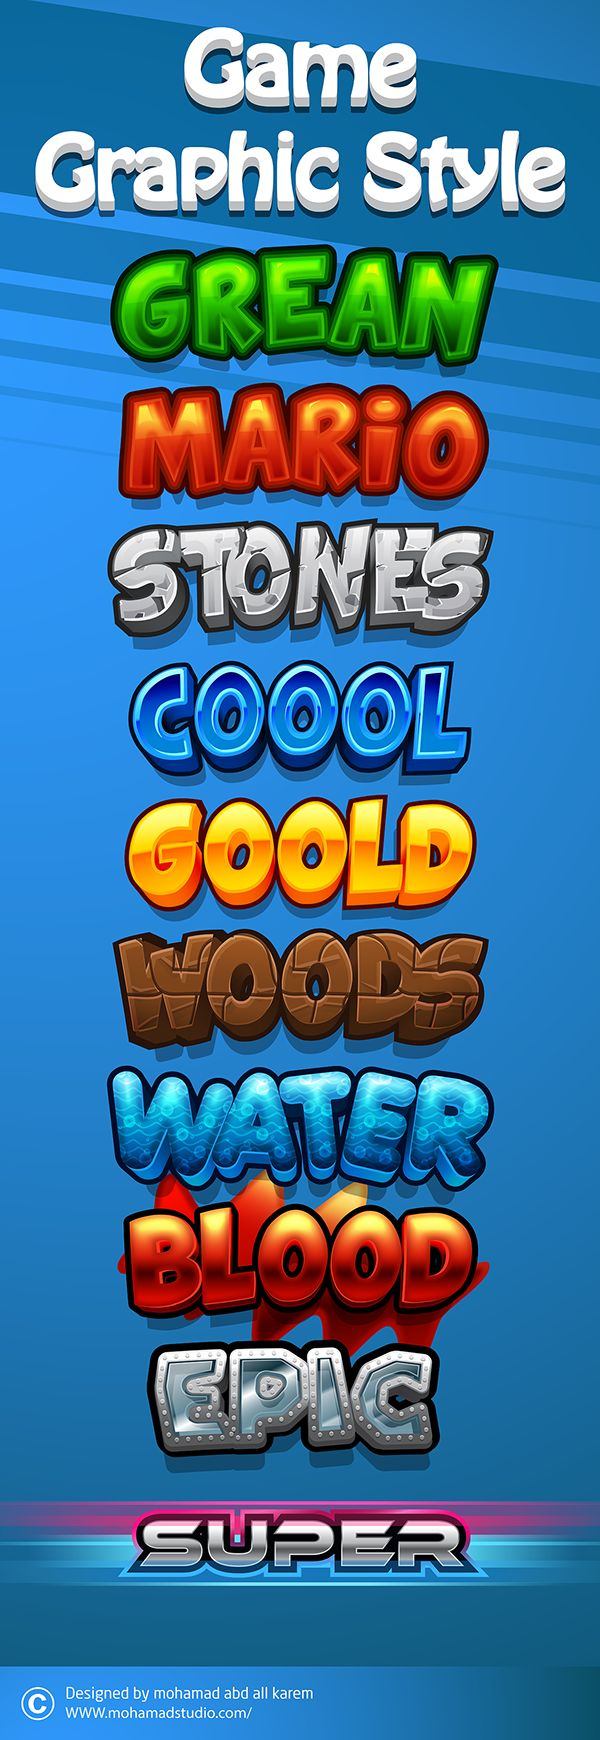 2d game graphic style on Behance